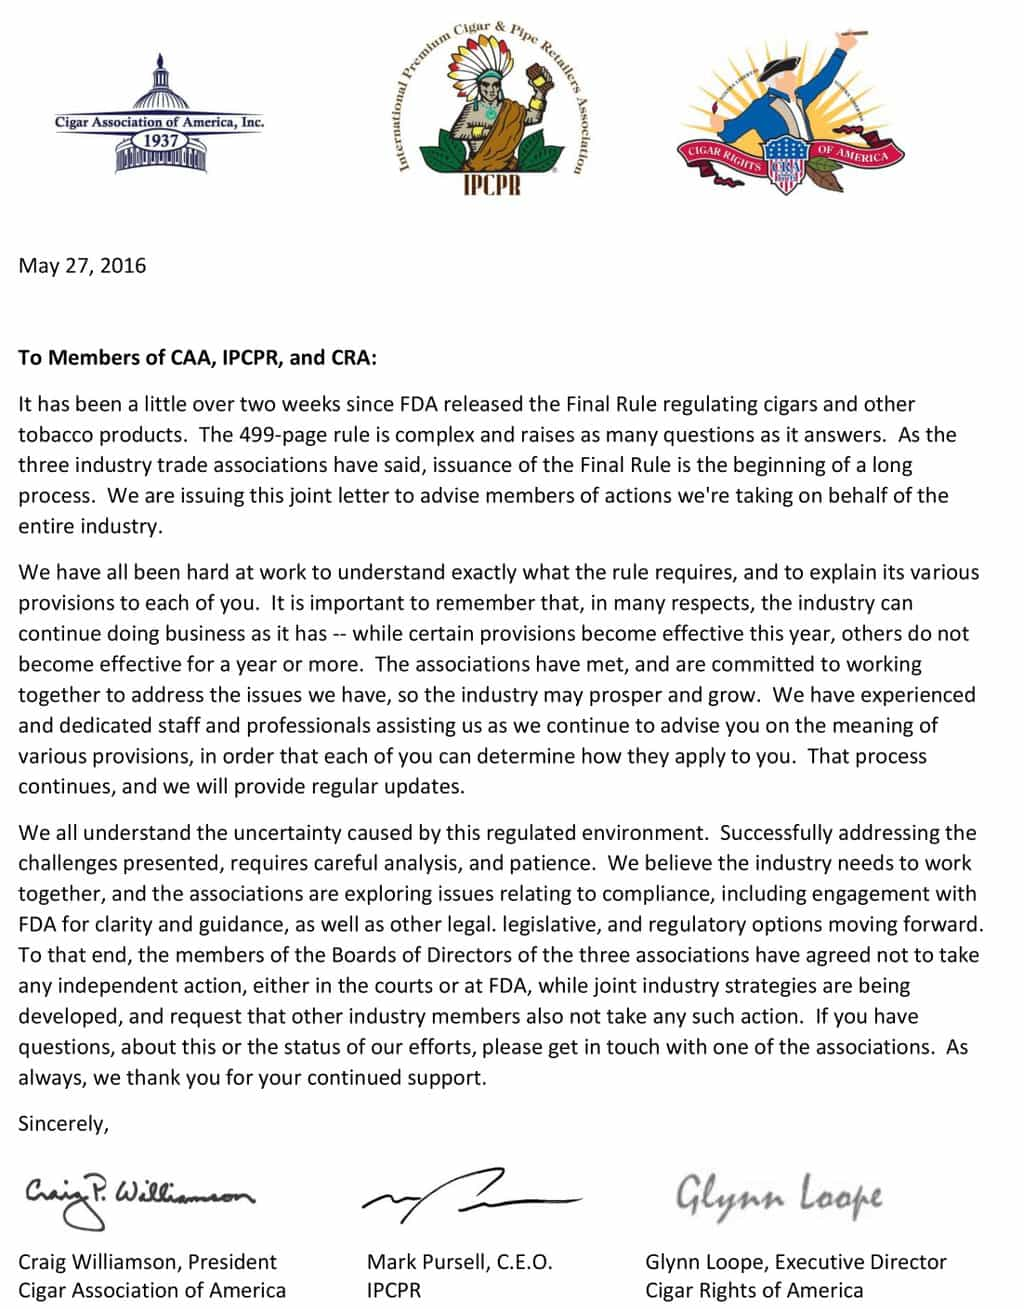 Joint Statement of CRA, CAA, and IPCPR